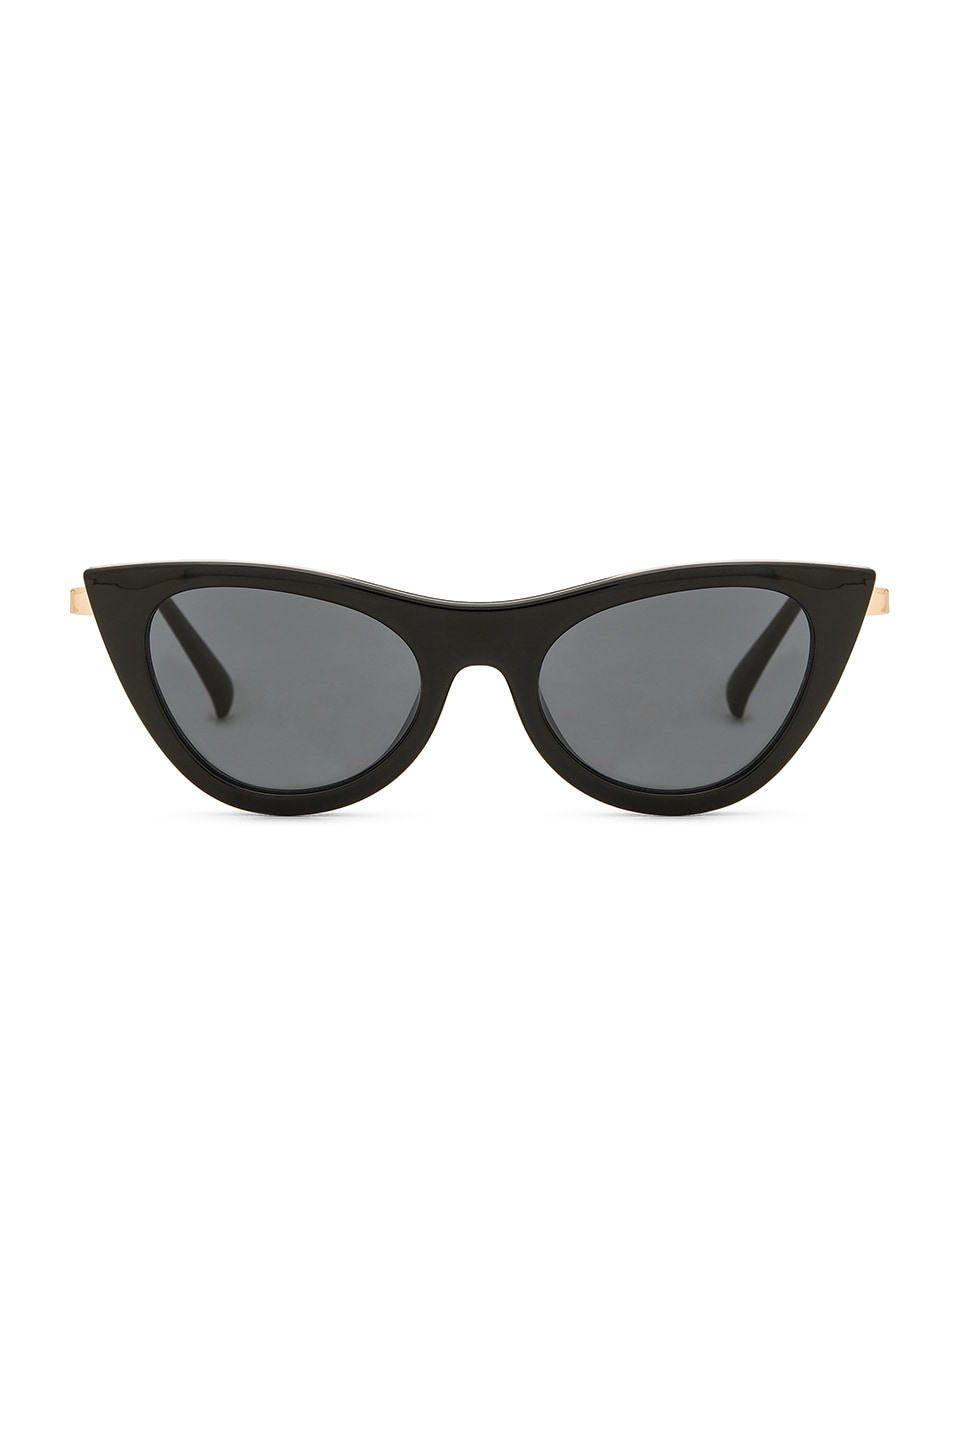 Le Specs Enchantress in Black & Smoke Mono